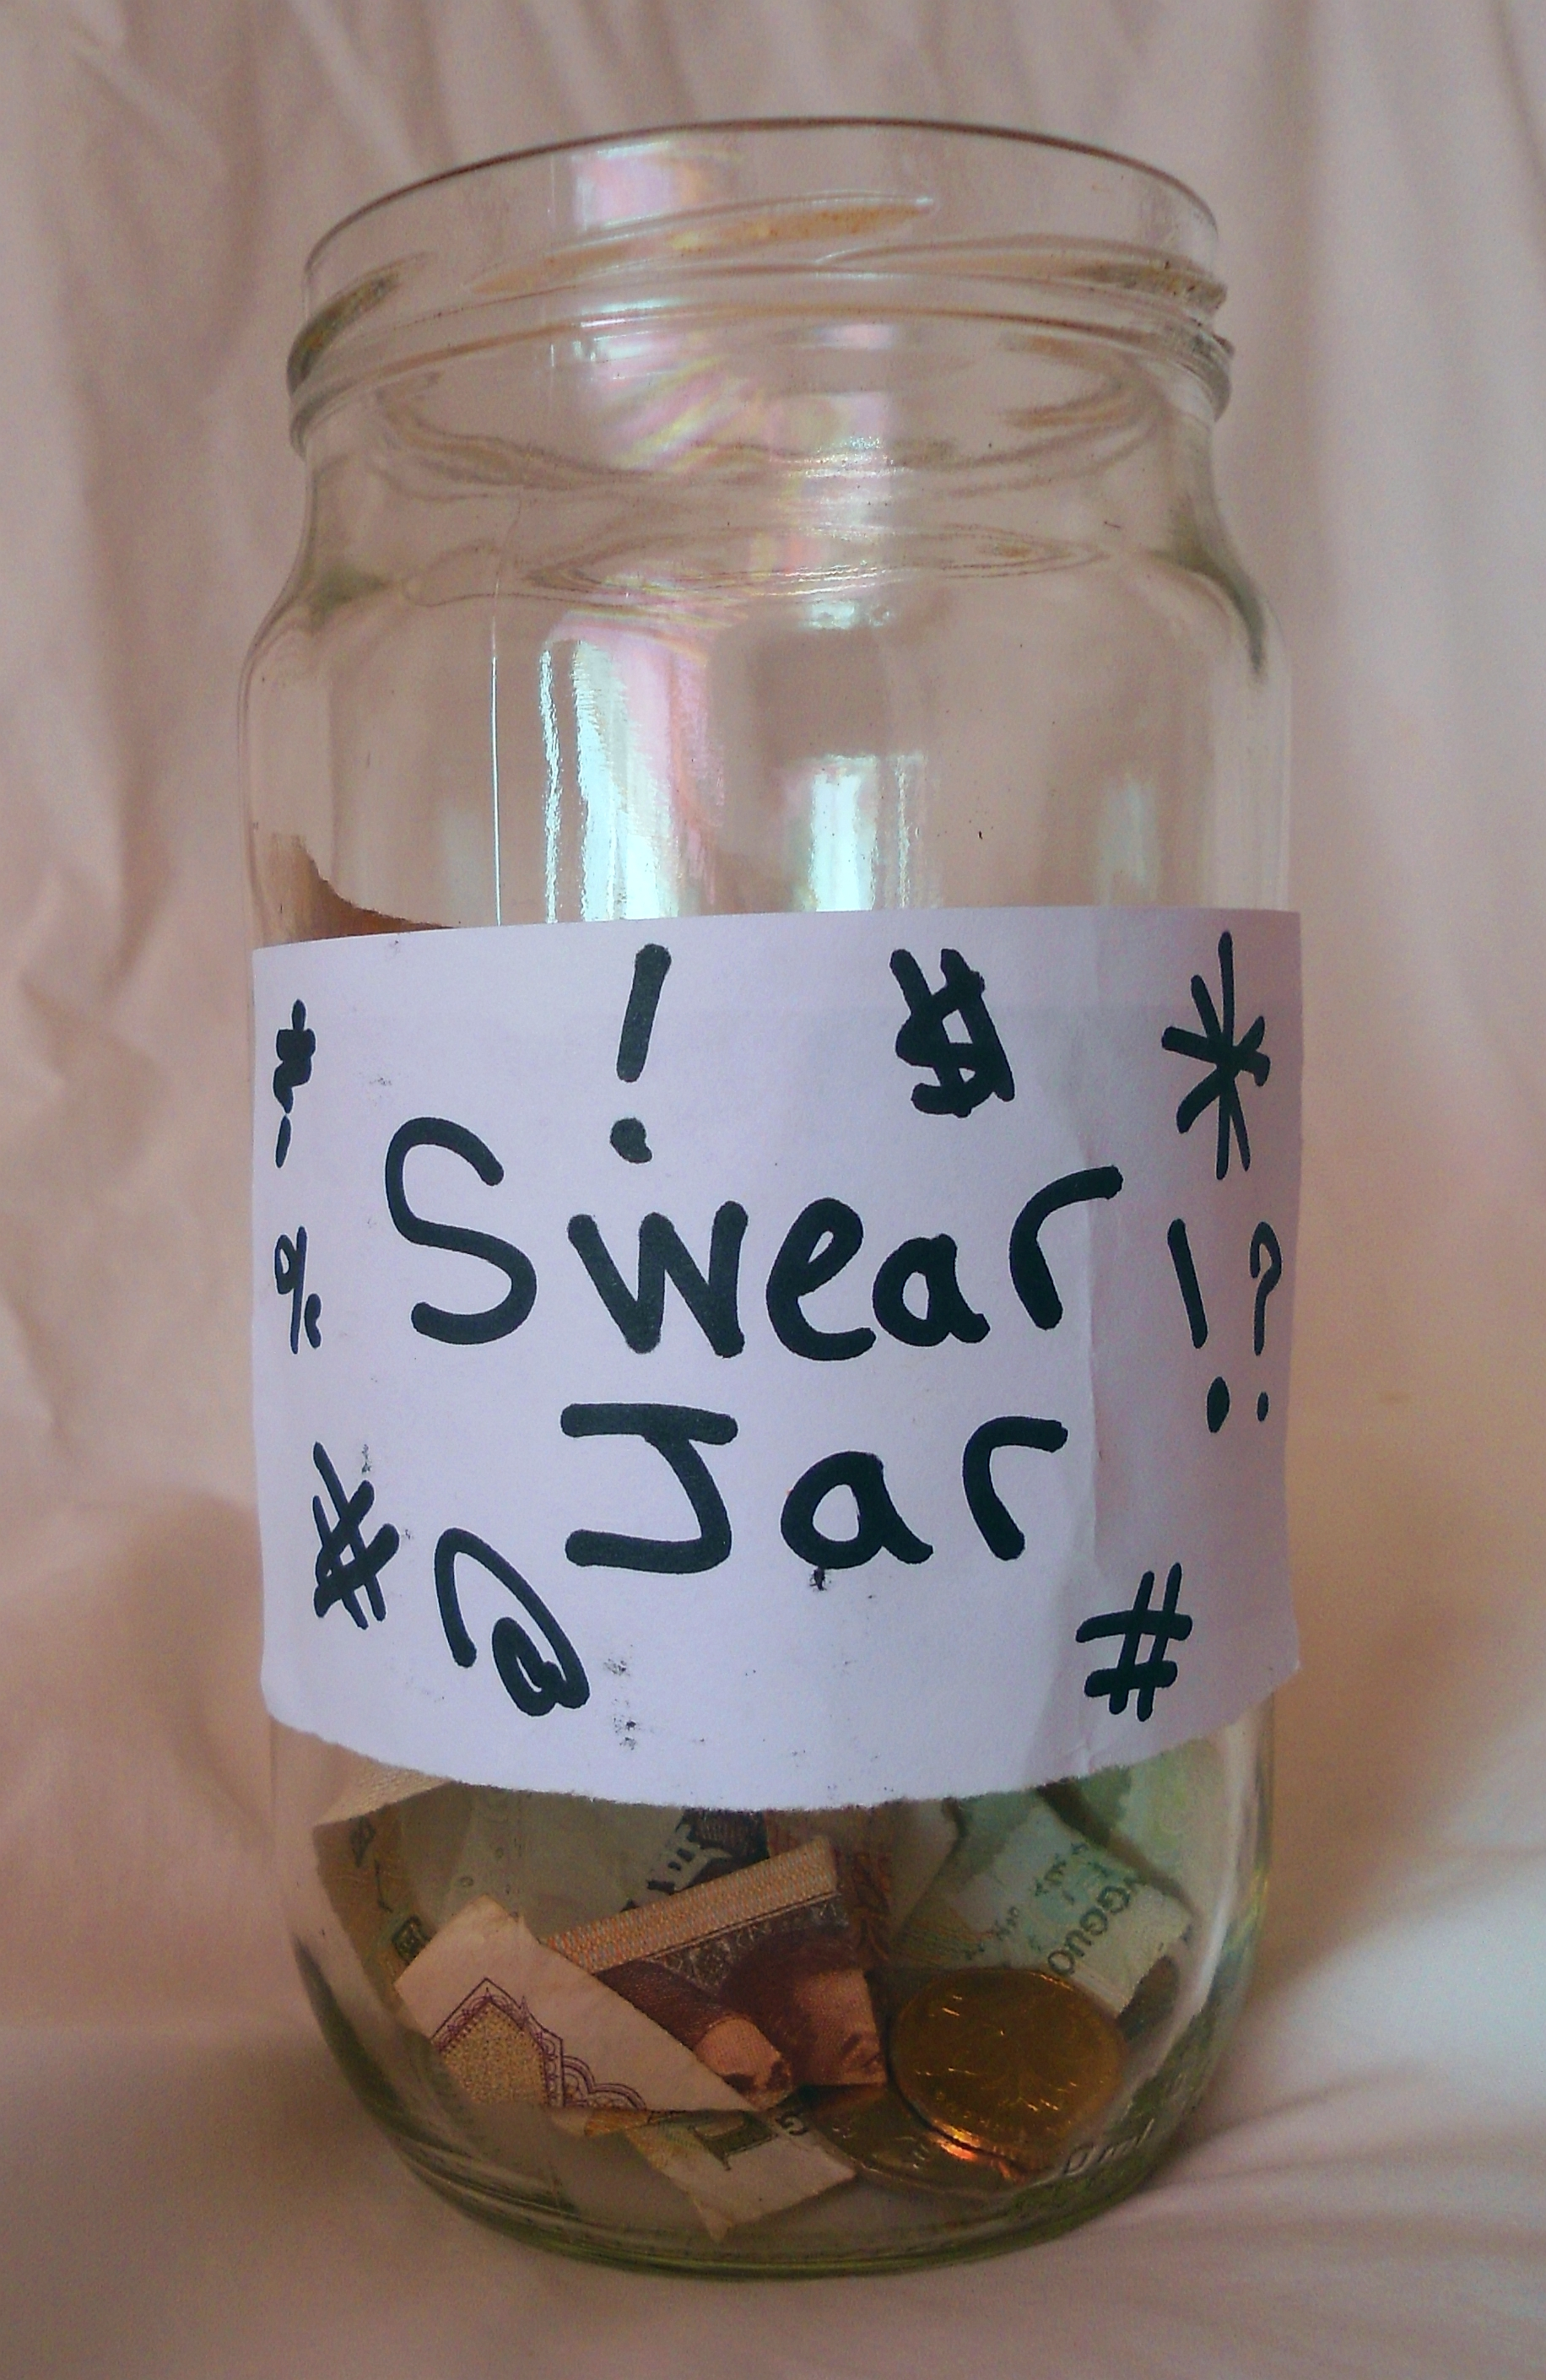 Swear Jar Wikipedia